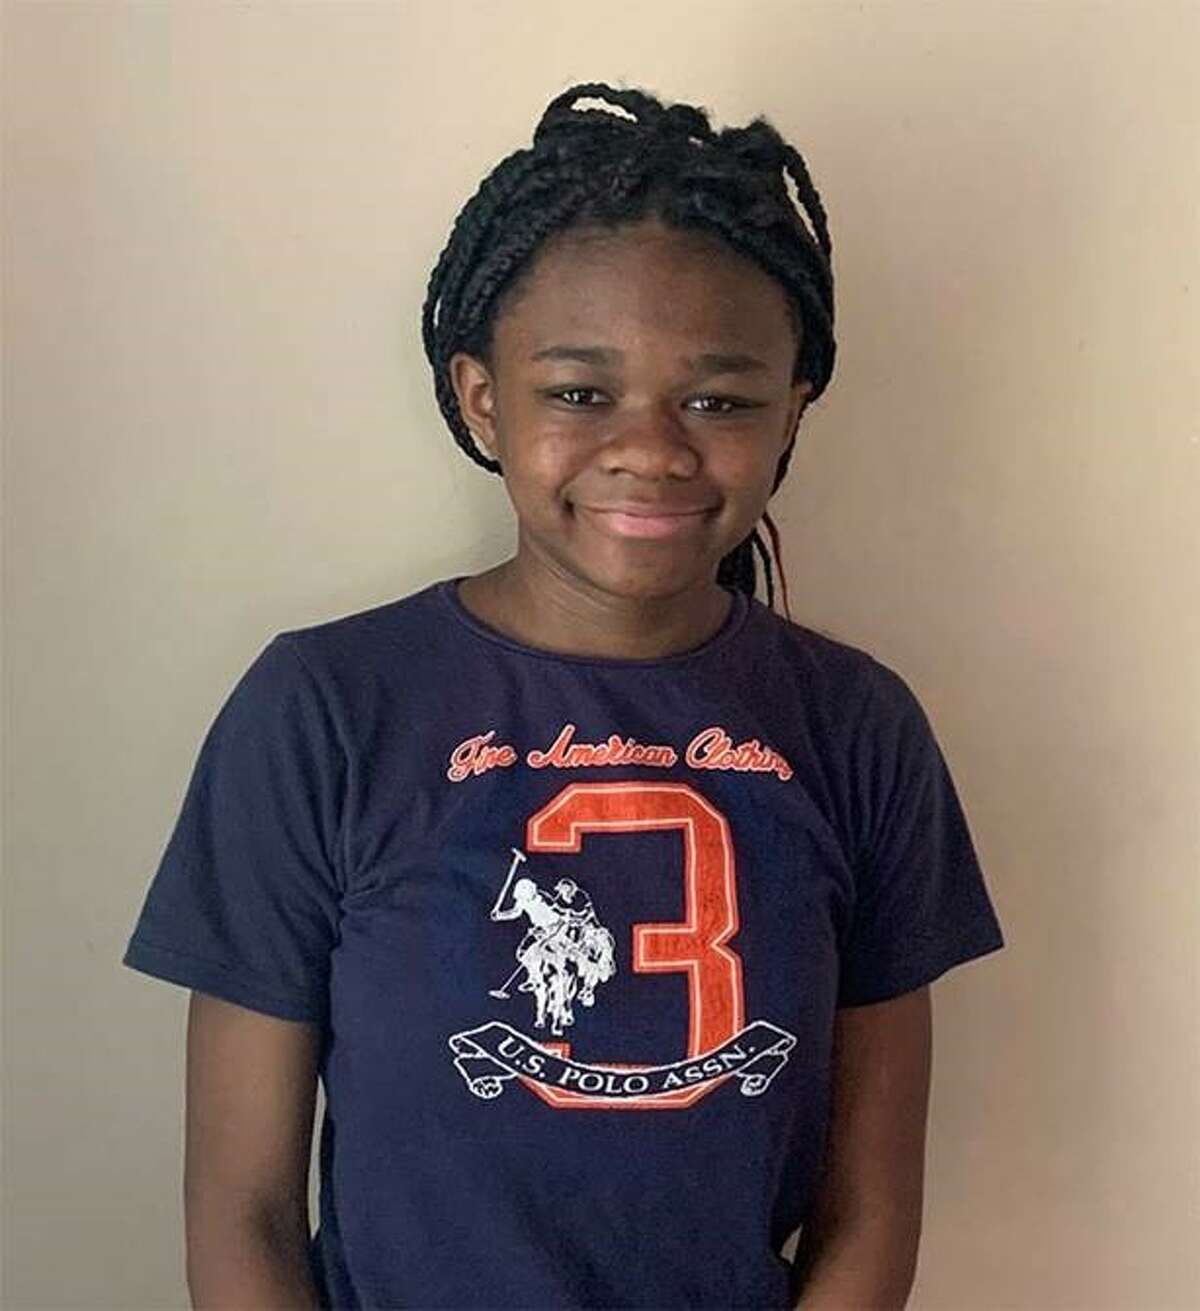 Javianna, 13, is a foster child who seeks a loving home.